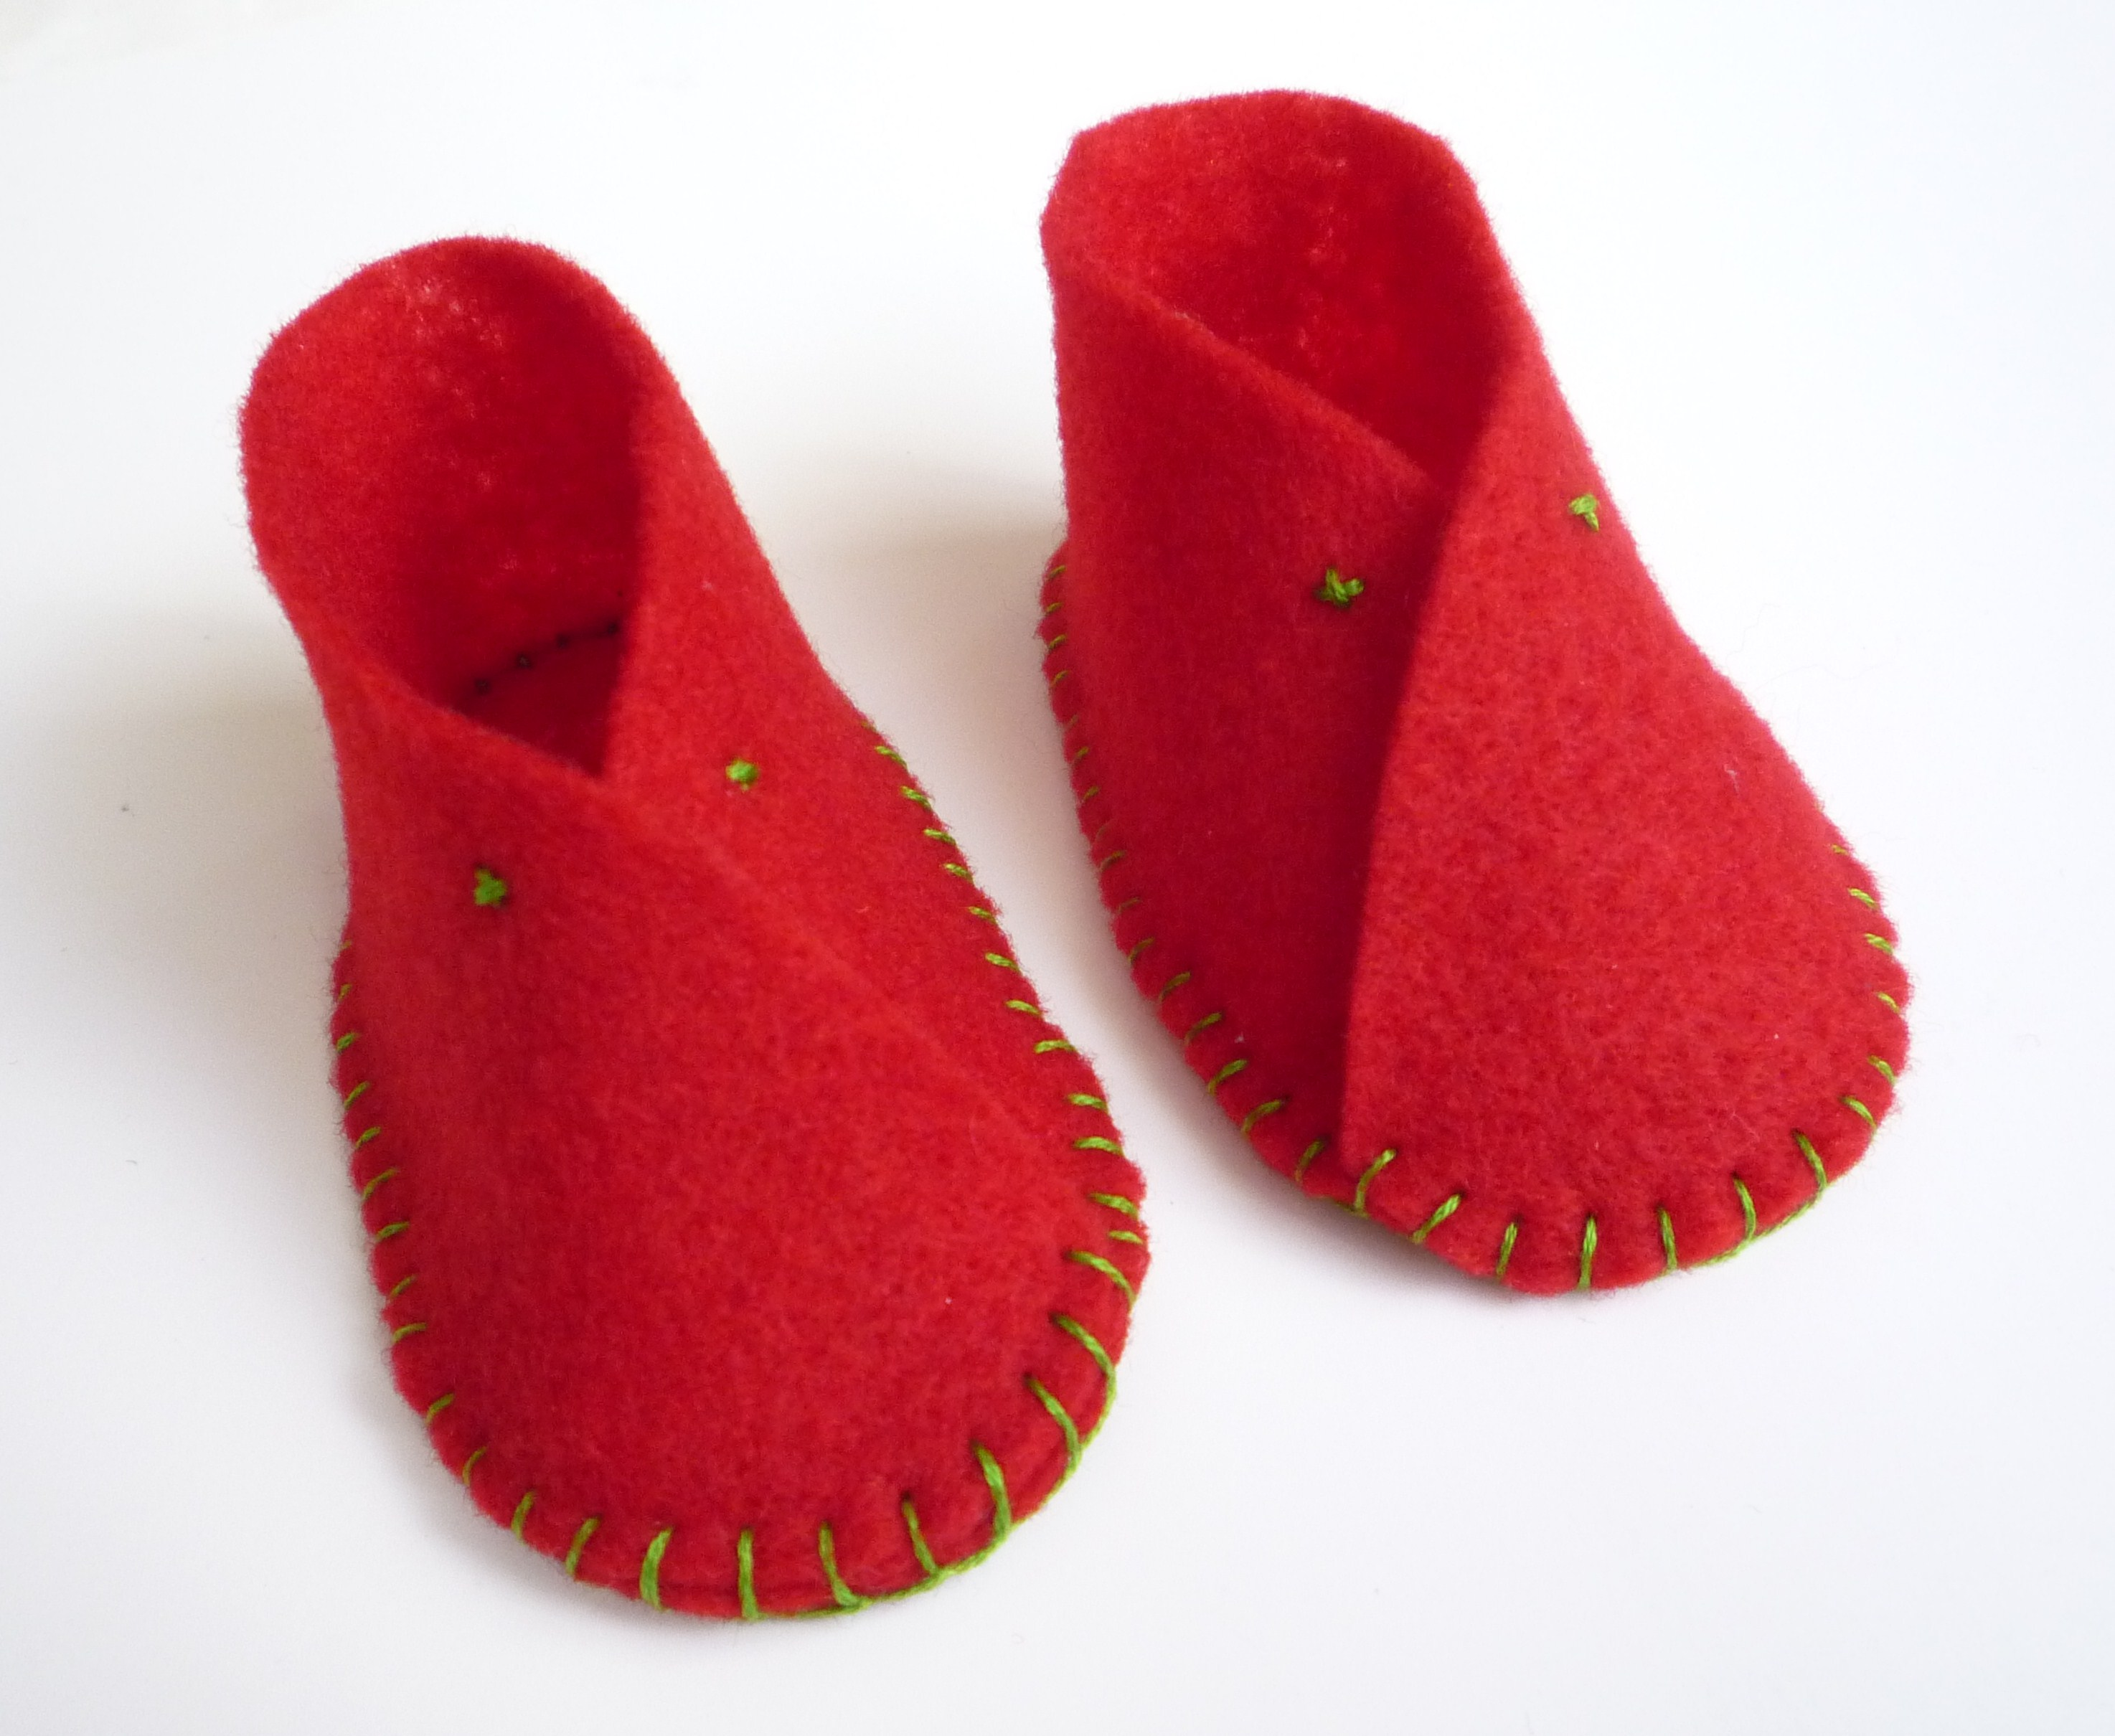 47 Beautiful Baby Shoes 2015 16 Latest fashion Collection